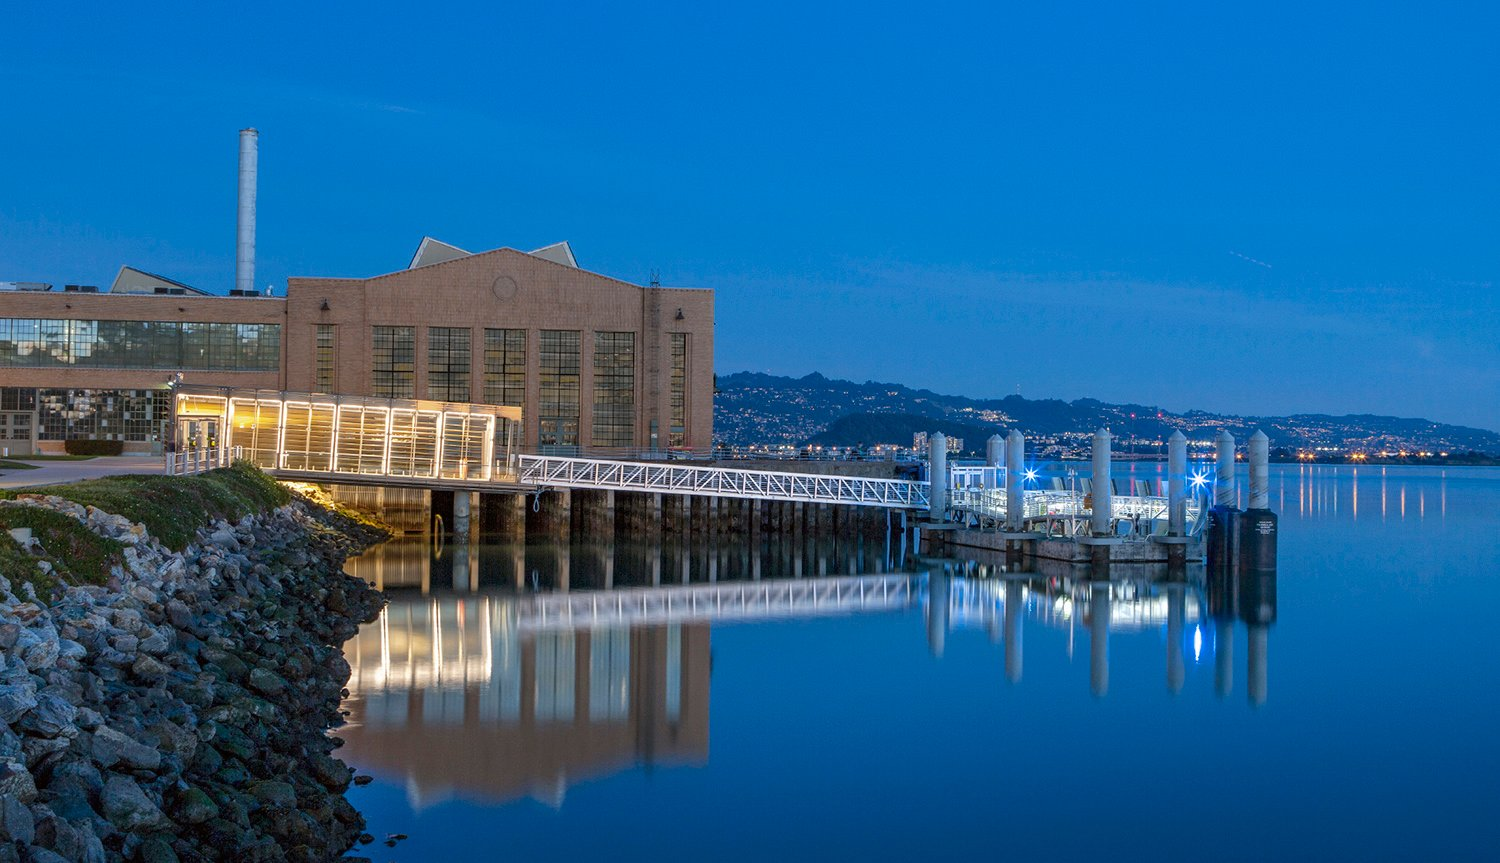 The terminal's western facade reflects on the surface of the Bay. Beyond to the east is the historic Ford Assembly Building, Marina Bay, and the Berkeley hills. Billy Hustace